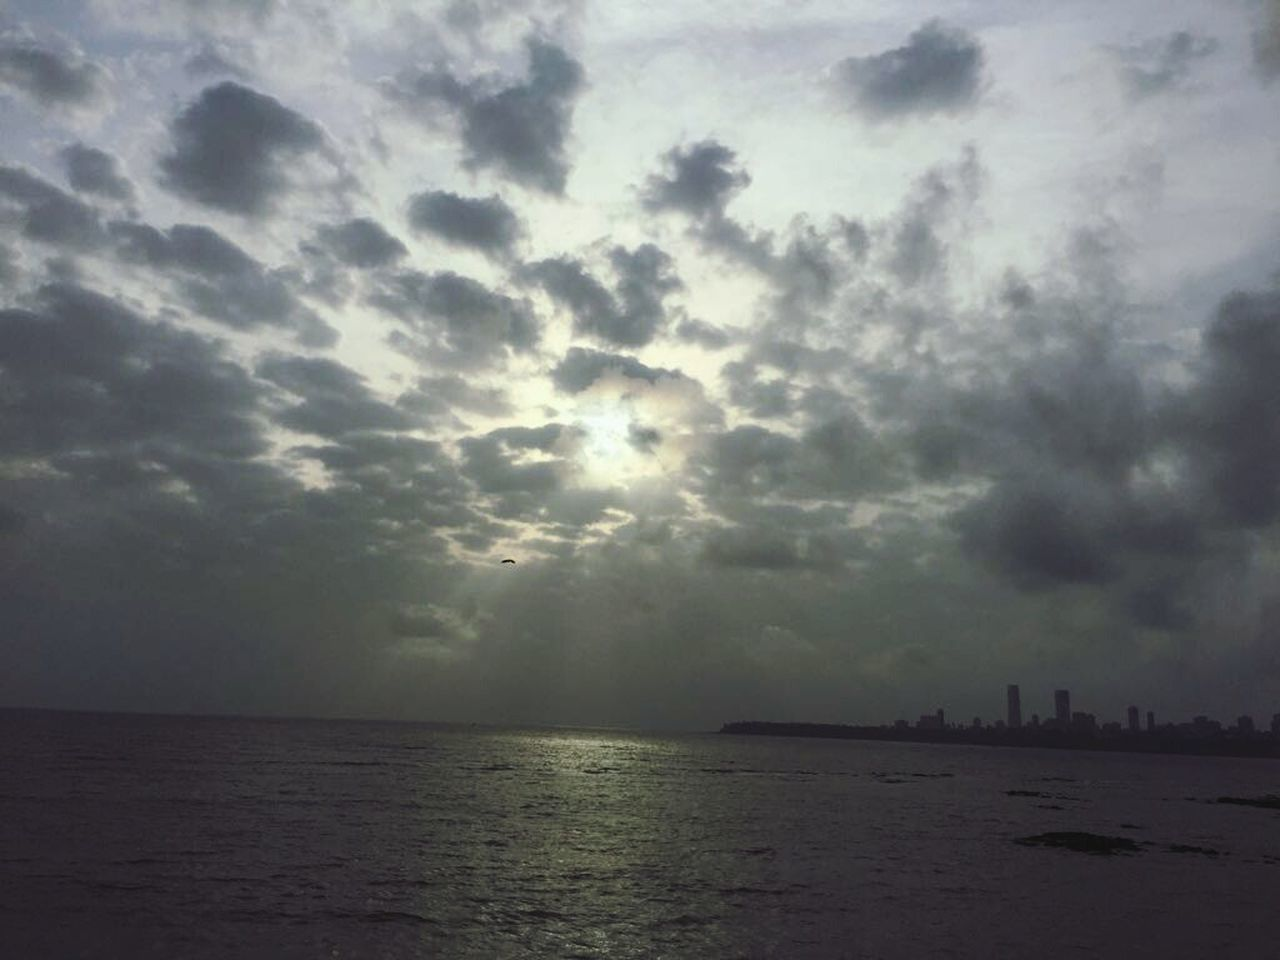 sea, cloud - sky, sky, architecture, built structure, building exterior, water, tranquility, waterfront, no people, nature, outdoors, scenics, sunset, beauty in nature, travel destinations, horizon over water, skyscraper, storm cloud, city, day, cityscape